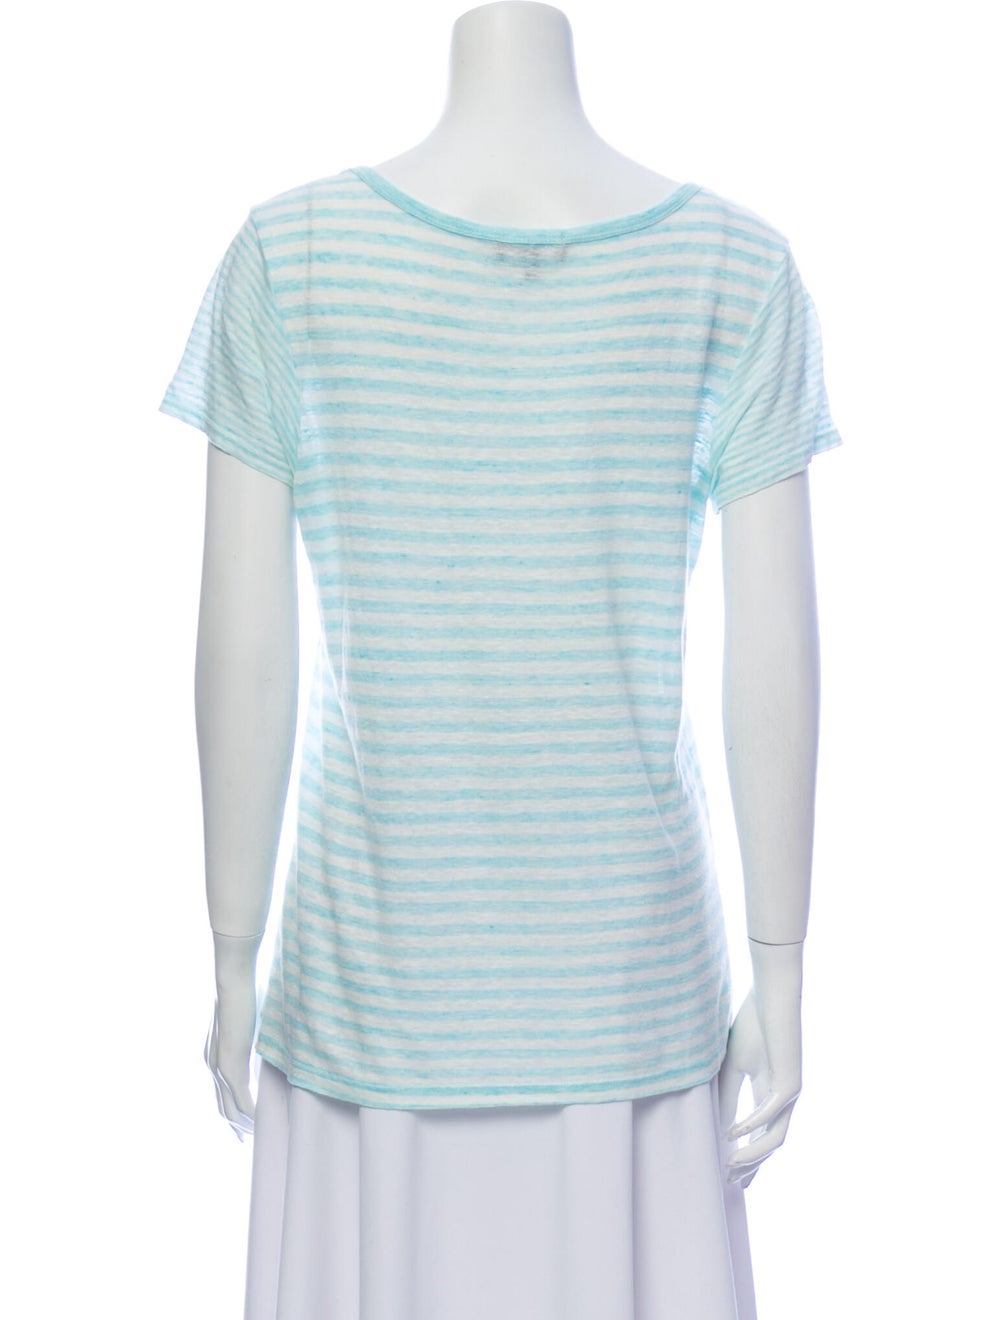 Theory Linen Striped T-Shirt Blue - image 3